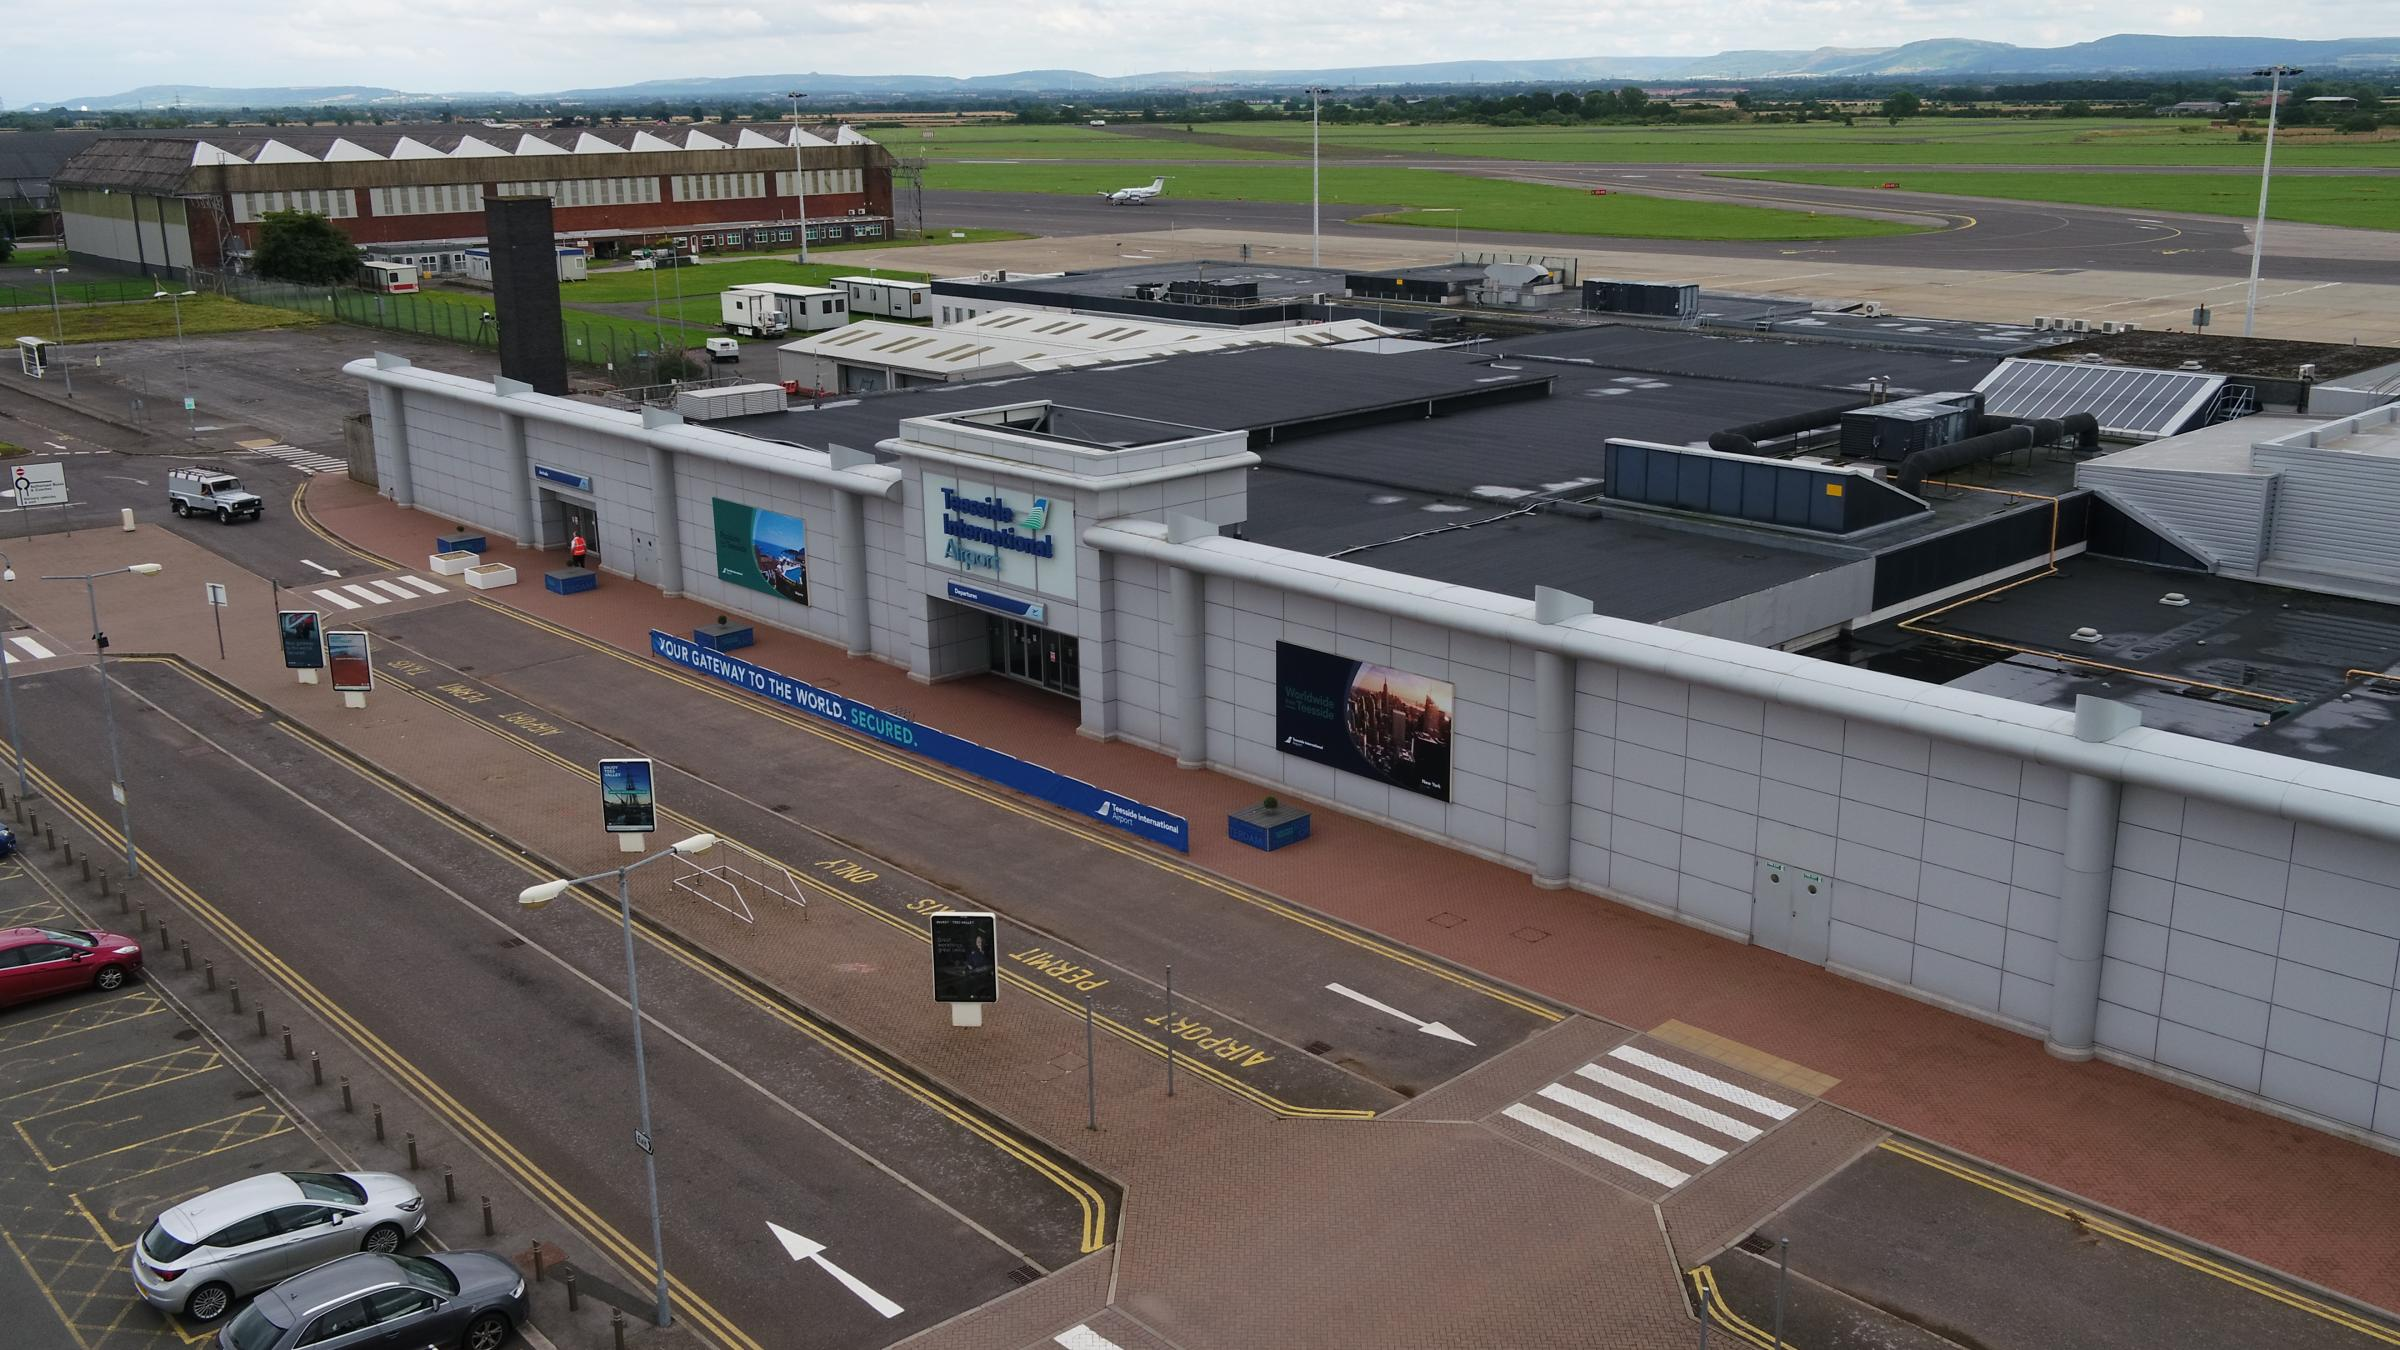 Teesside Airport sees 25 percent stake handed back by operator - here's why